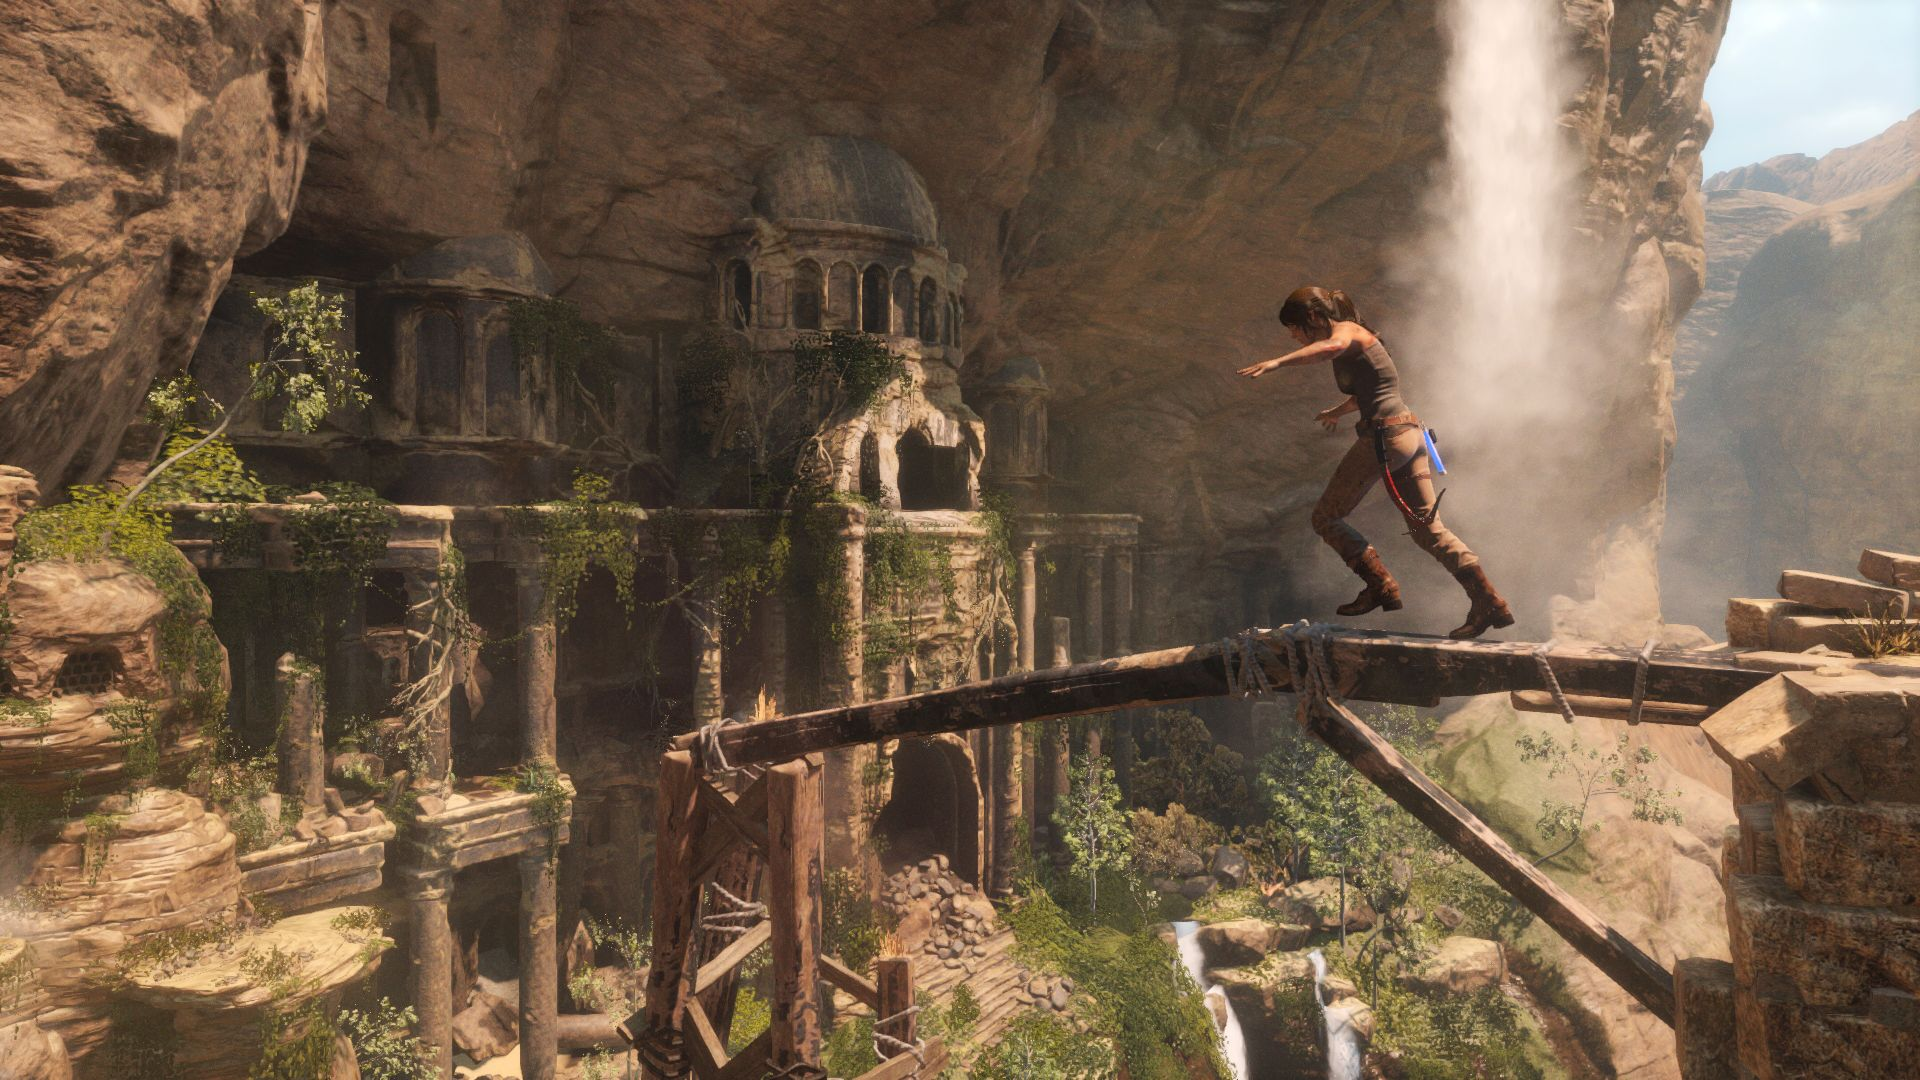 Rise Of The Tomb Raider 20 Jahriges Jubilaum Kostenlose Demo Fur Die Playstation 4 Kotomi